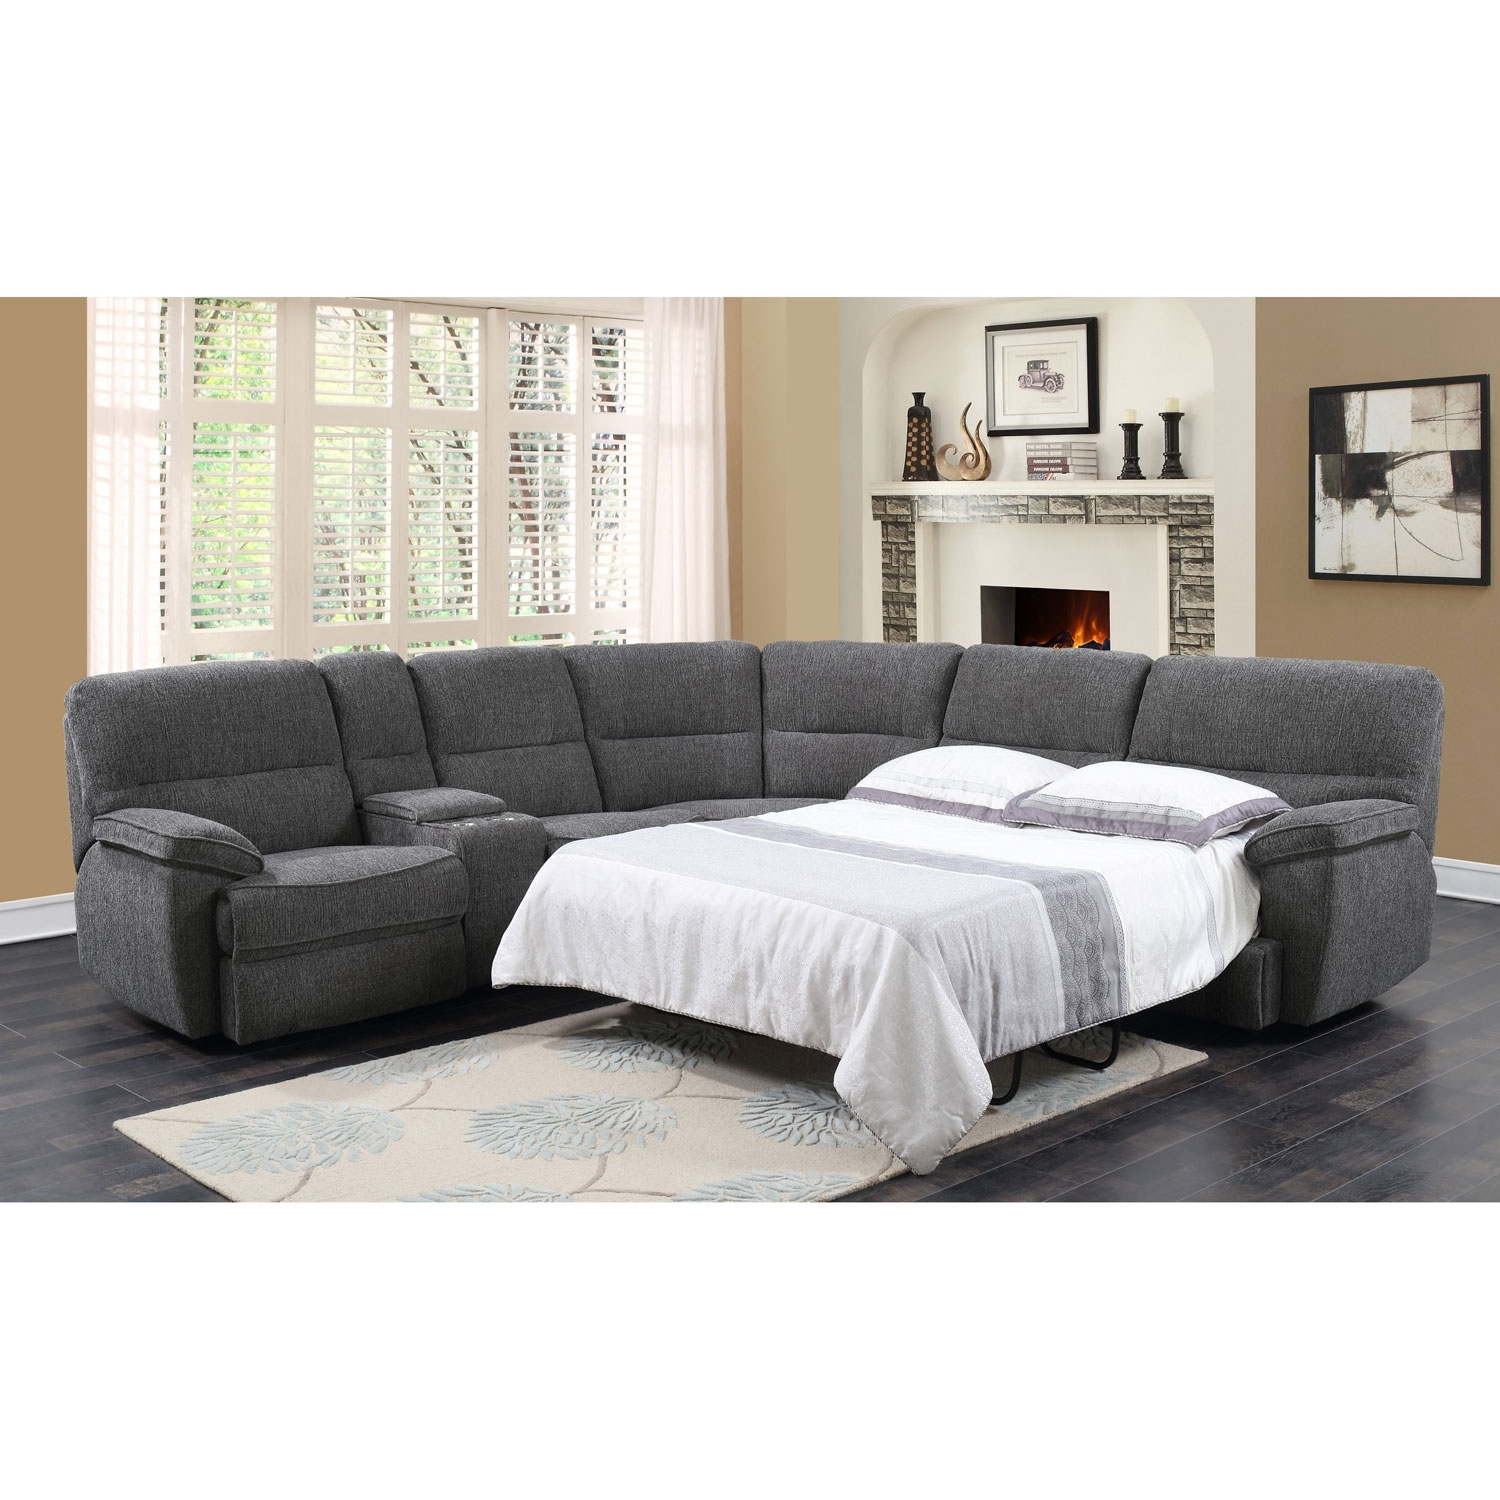 Emerald Home Furnishings Emerald Home Aurora 3 Piece Sleeper Intended For Aurora 2 Piece Sectionals (Photo 22 of 30)